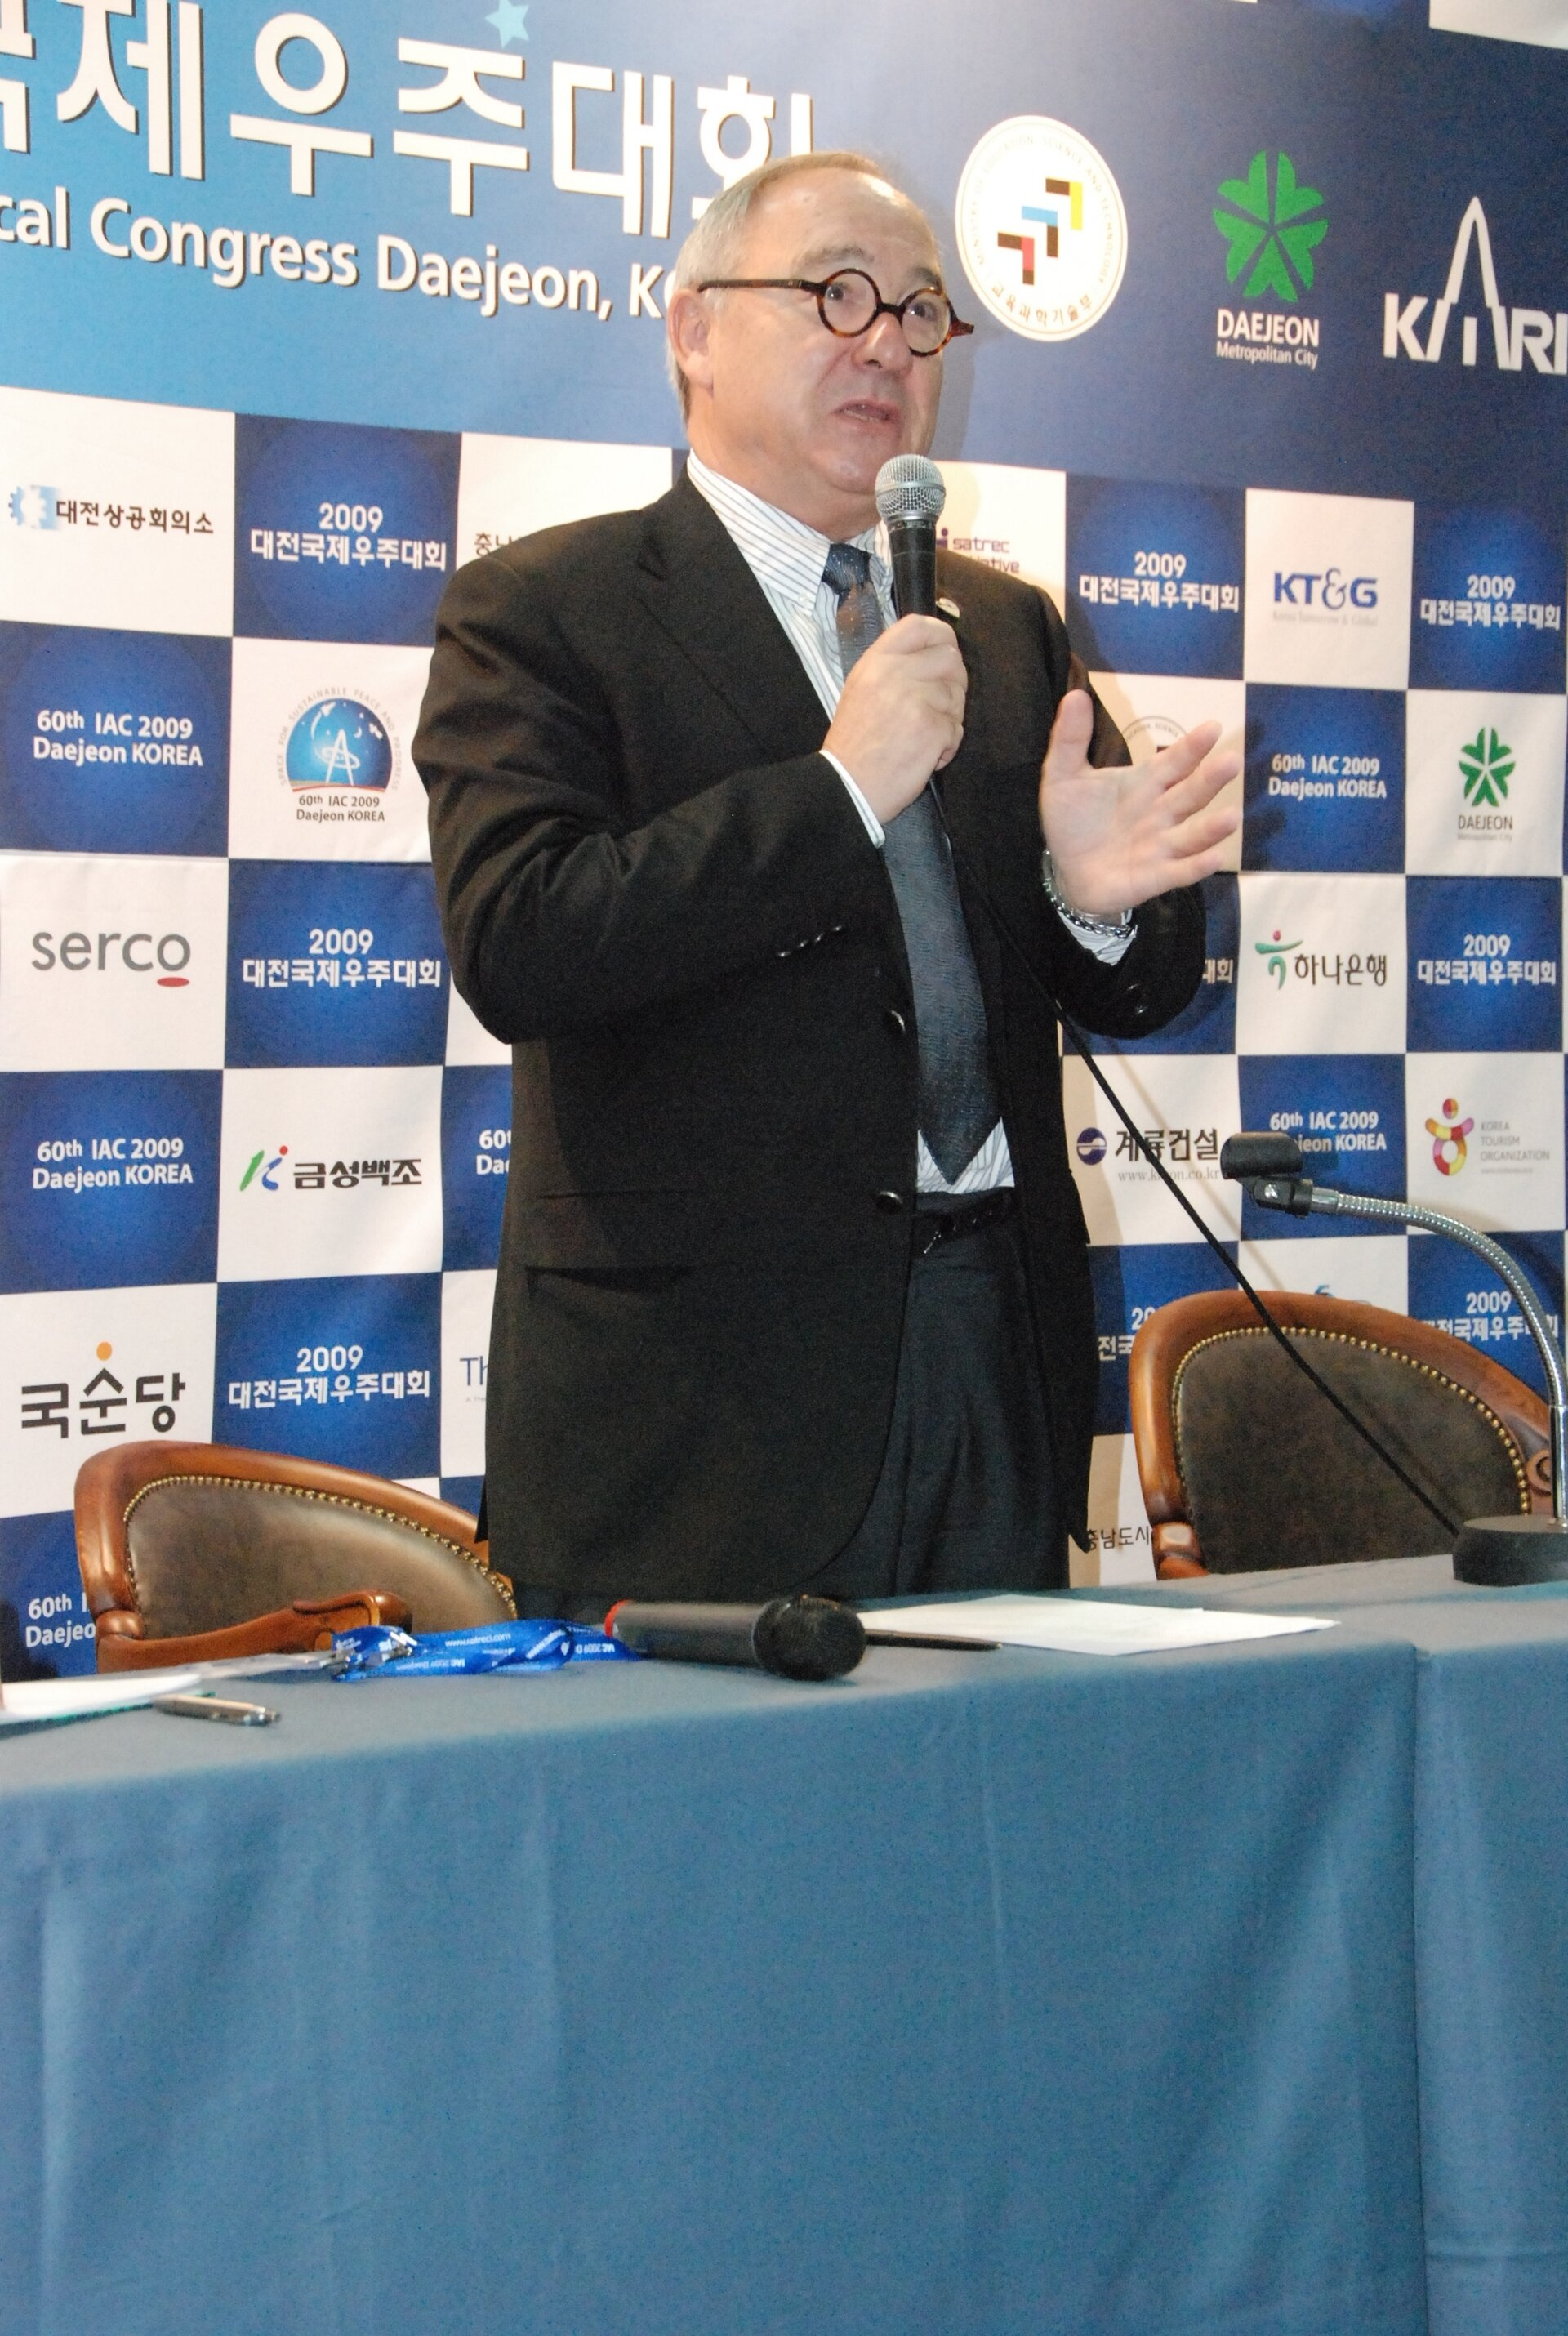 ESA Director General Jean-Jacques Dordain addressing journalists at IAC 2009 in Daejeon South Korea (13 October 2009)